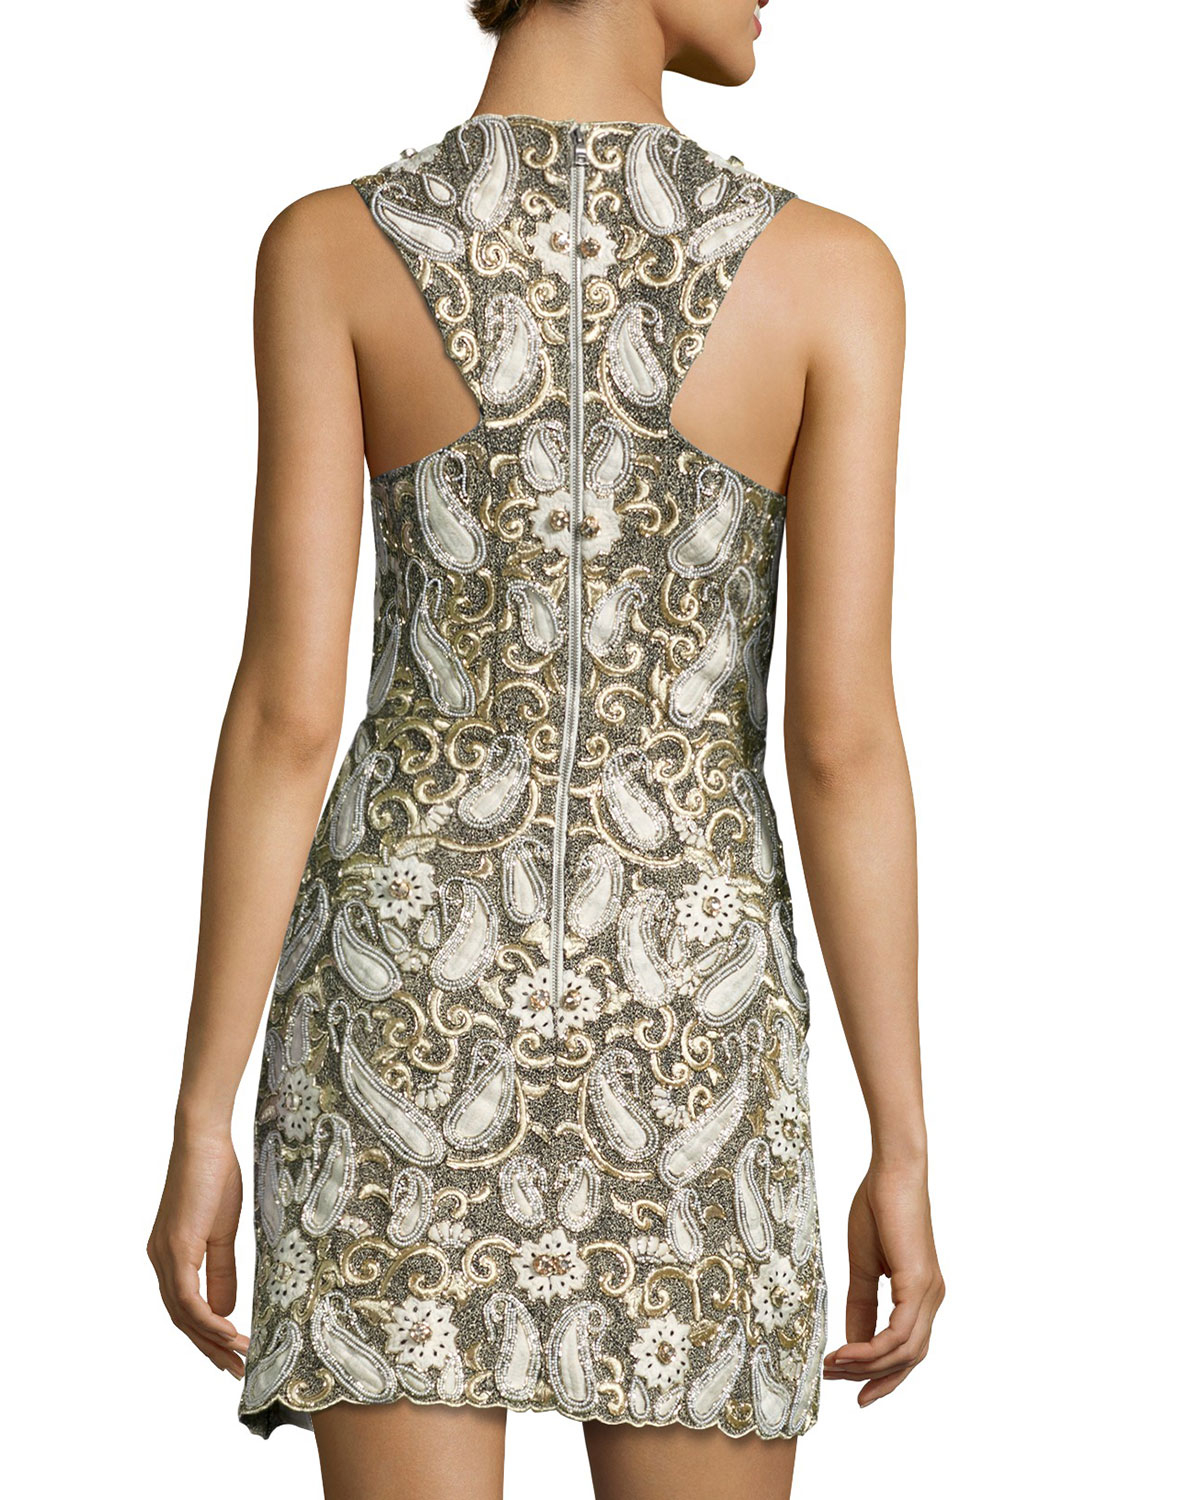 Alice olivia jania embroidered sleeveless dress in brown